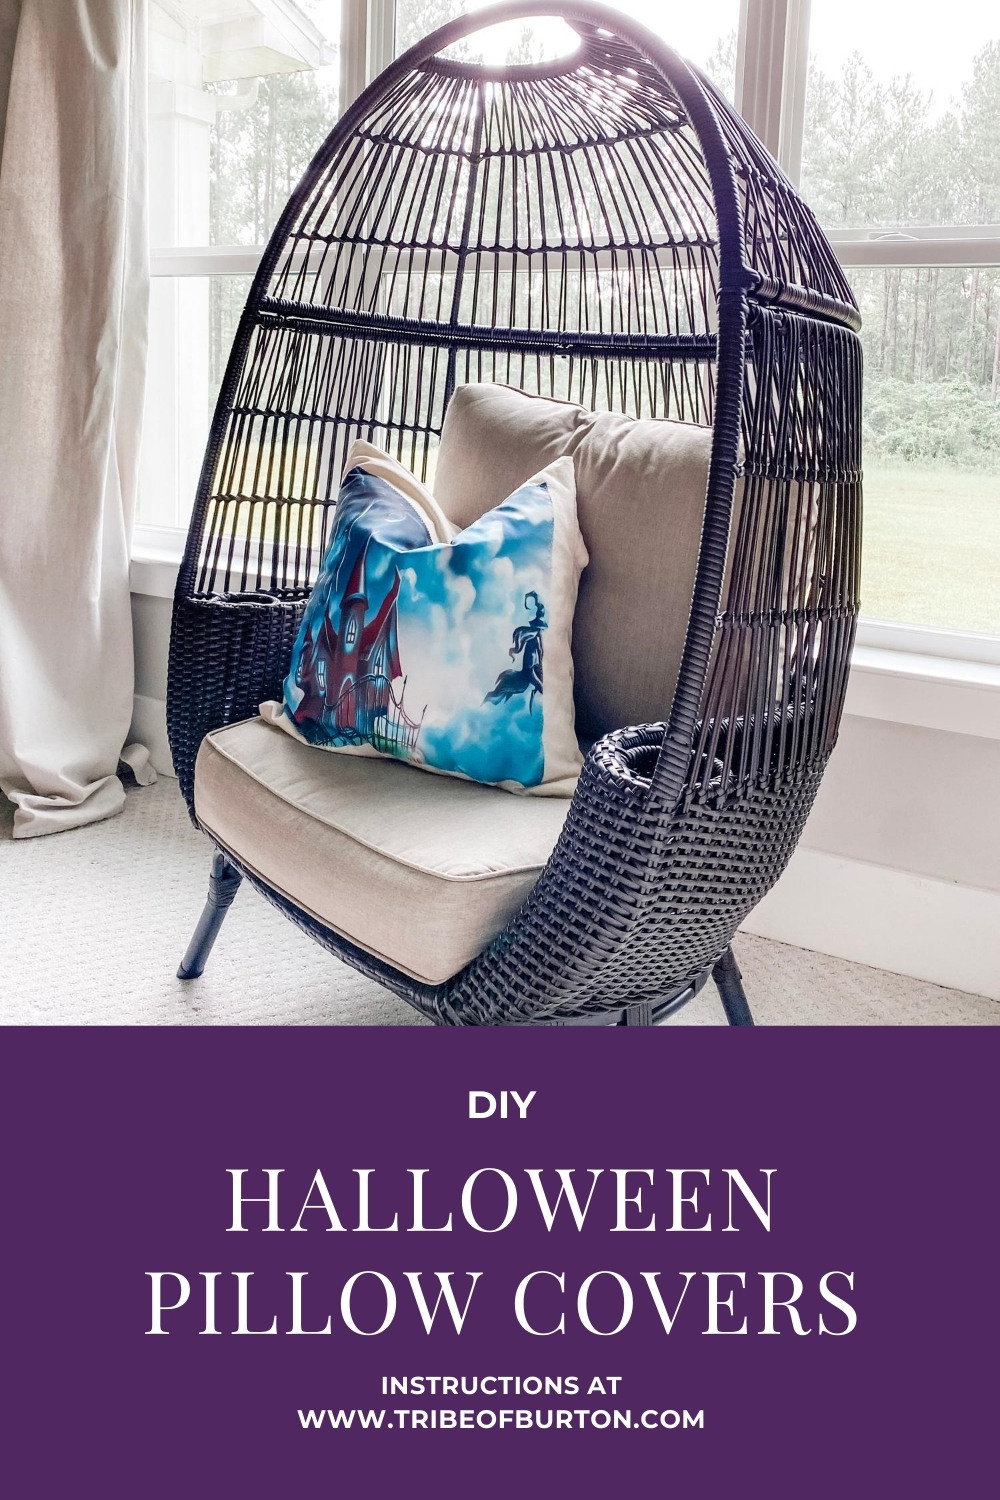 Halloween Pillow Cover in chair in bedroom by window.